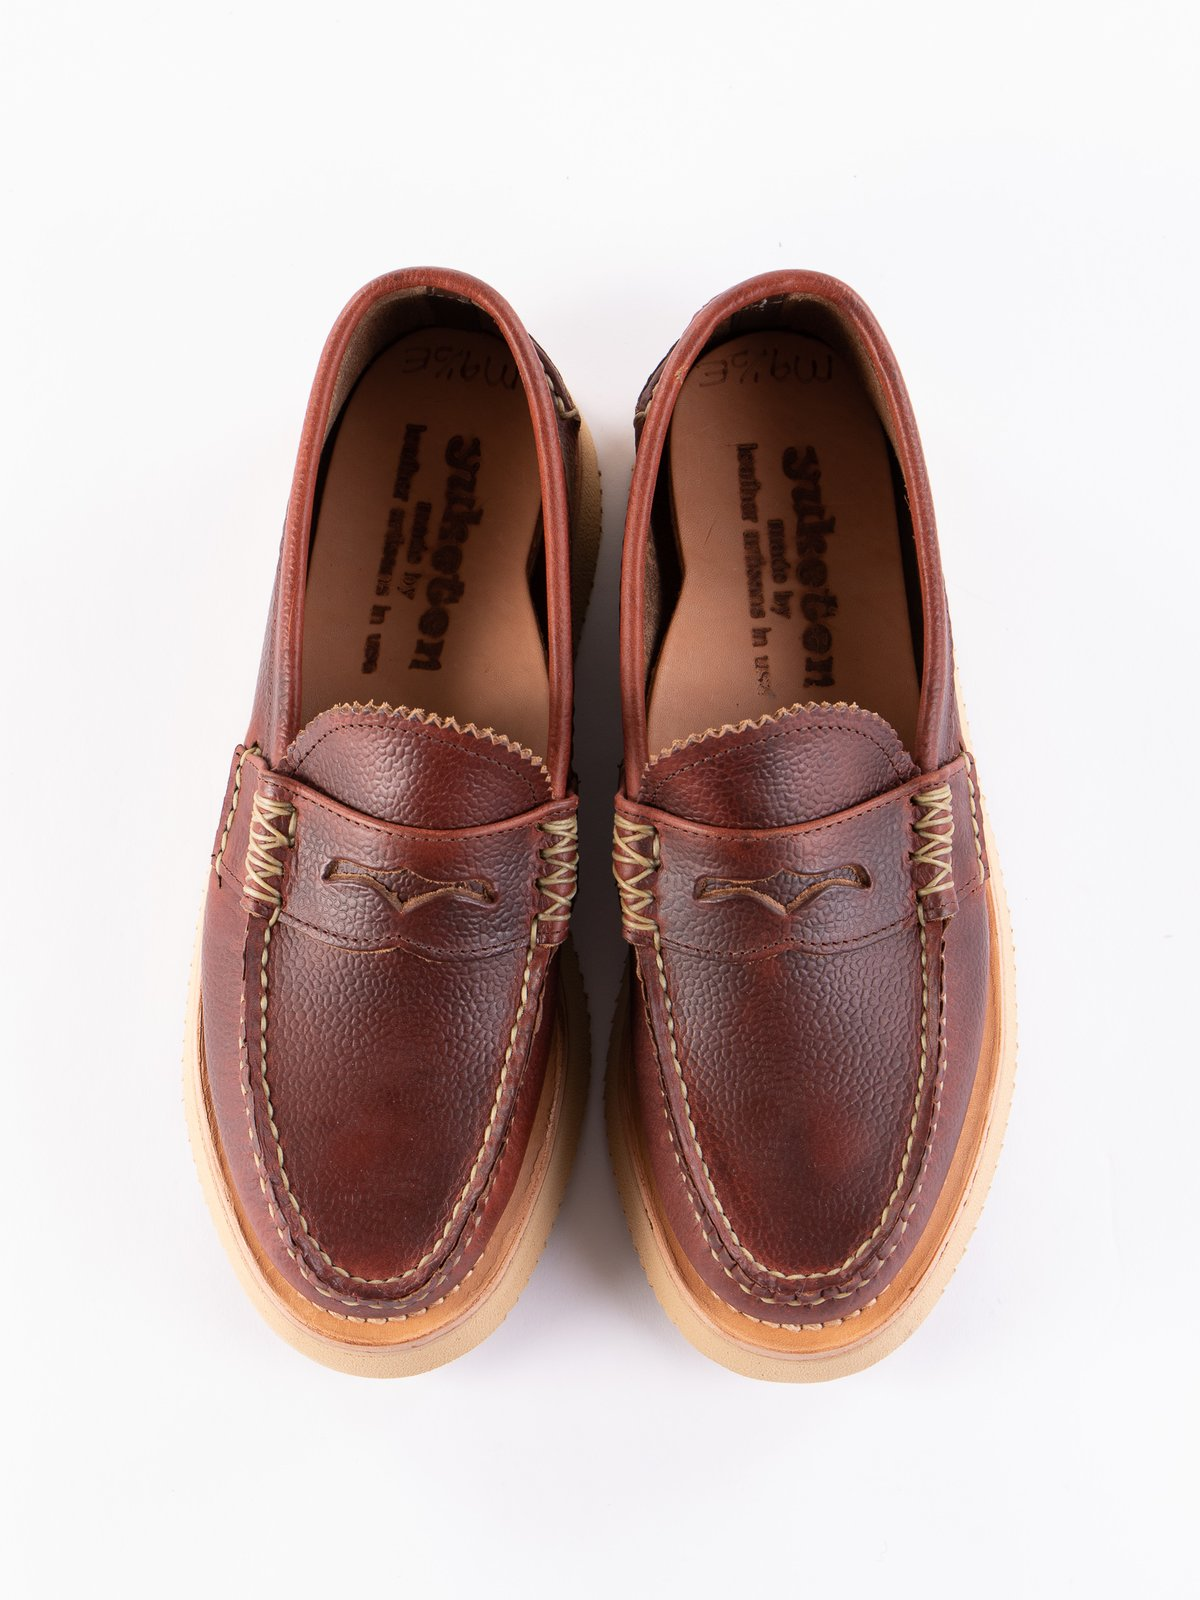 SG Tan Loafer Shoe Exclusive - Image 6